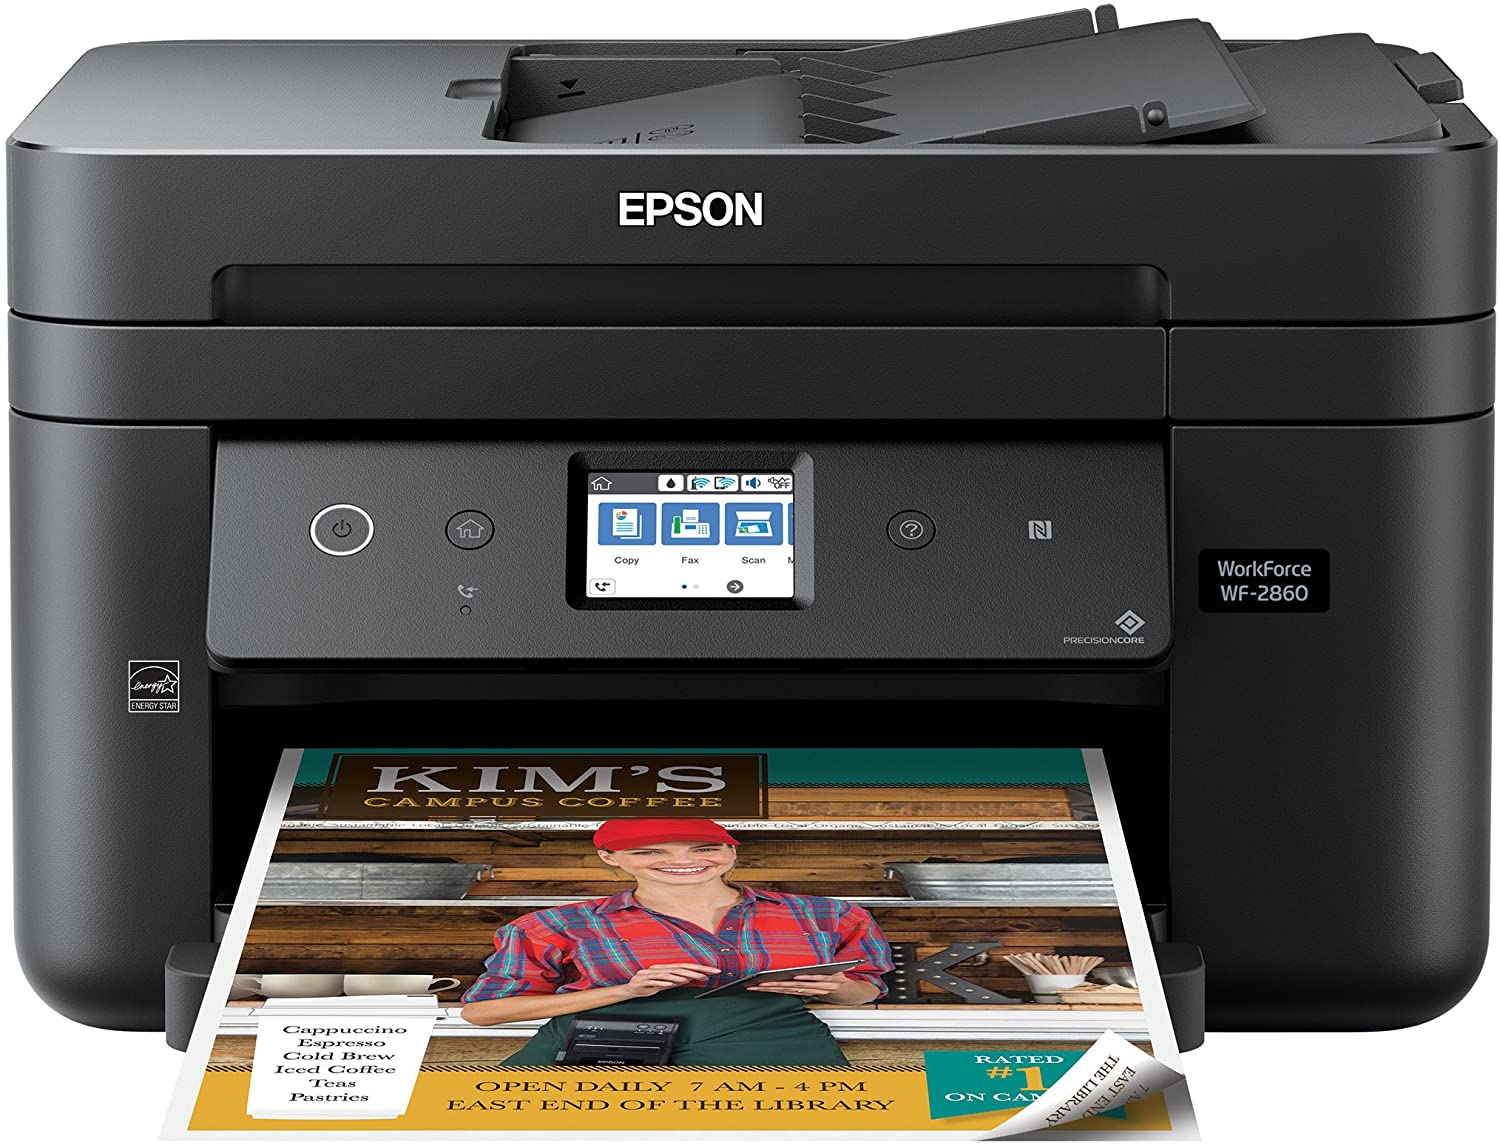 Epson Workforce WF-2860 All-in-One Wireless Color Printer with Scanner, Copier, Fax, Ethernet, Wi-Fi Direct and NFC, Amazon Dash Replenishment Enabled (Renewed)